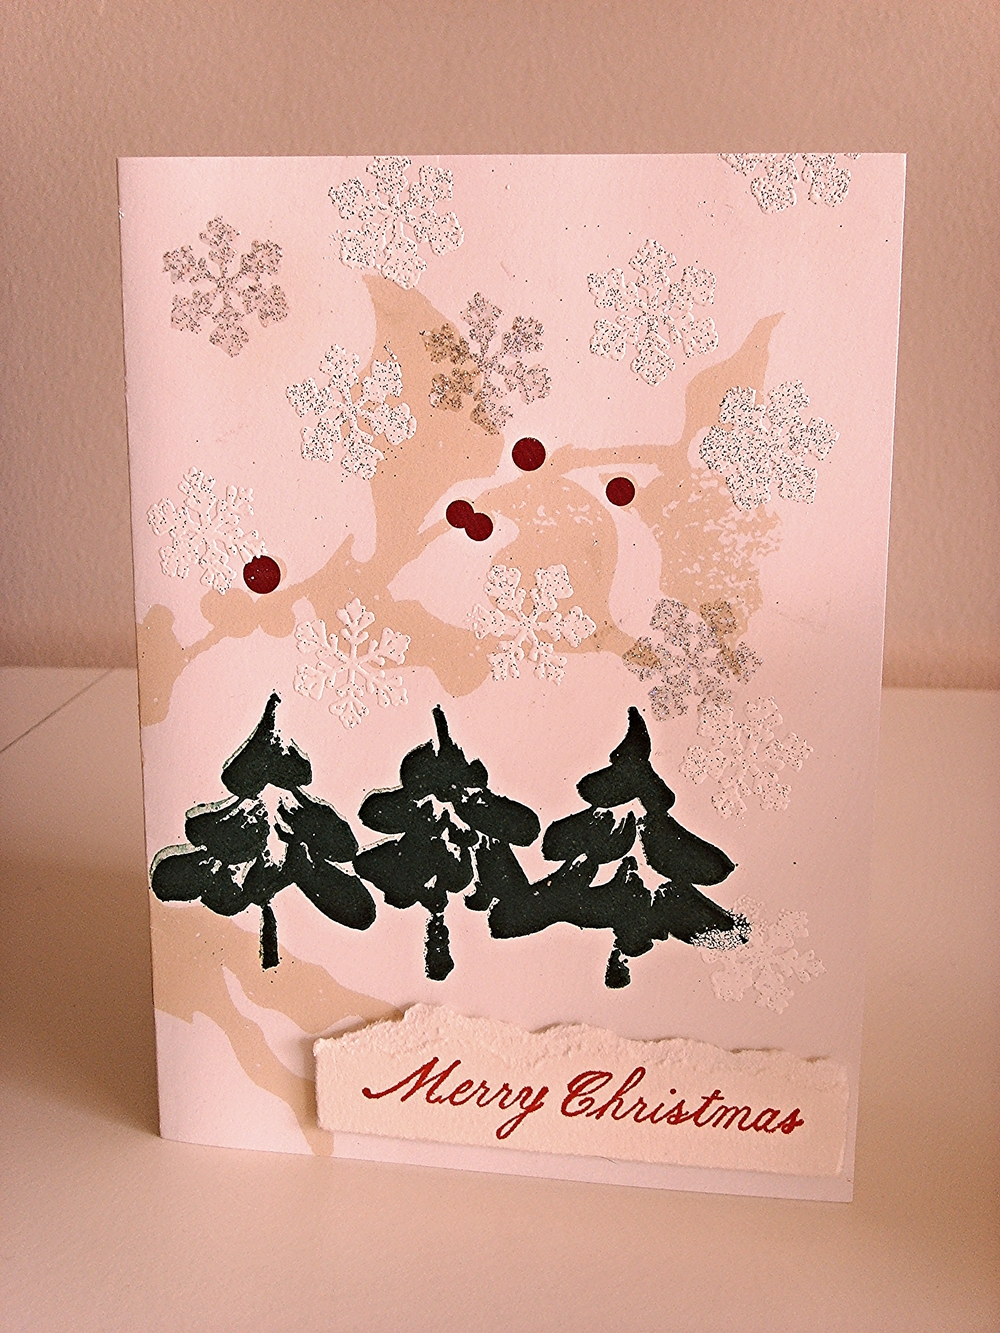 Up-Cycled Starbucks Mailer into Card